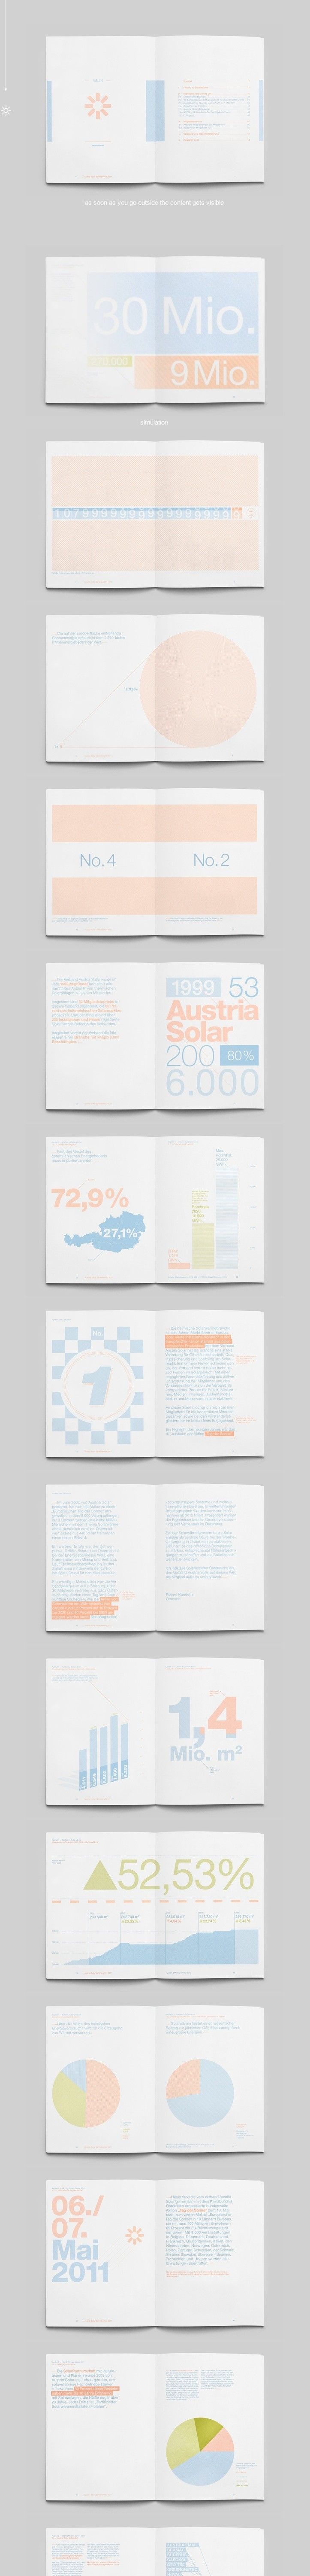 The Solar Annual Report, powered by the sun 파스텔톤 편집디자인